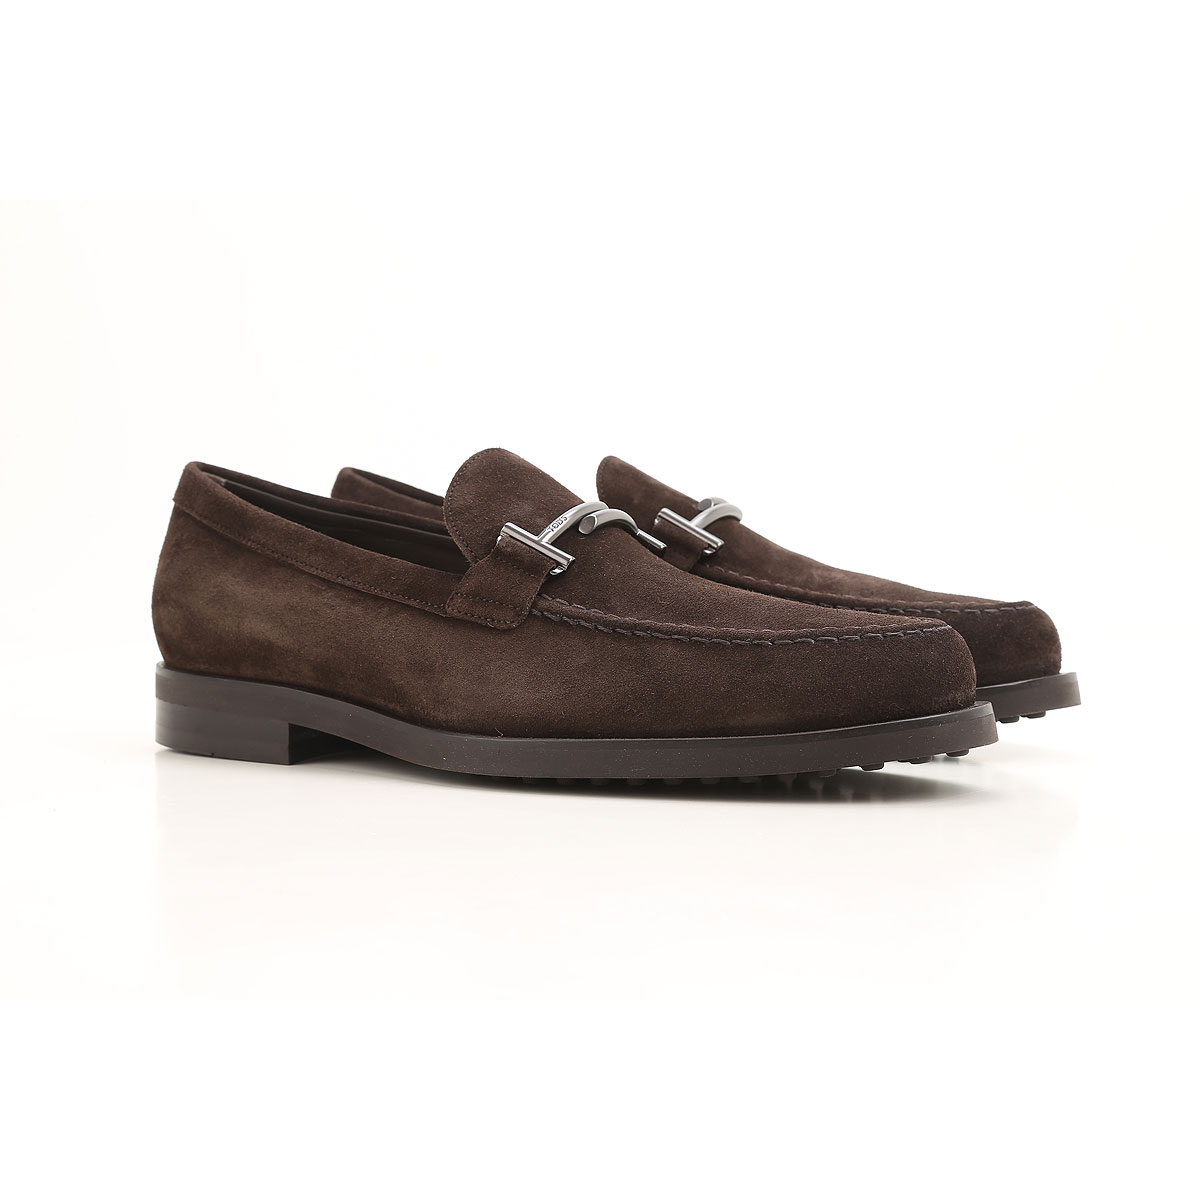 97100621d29 Double T suede loafers - TOD S - Paolo Fiorillo